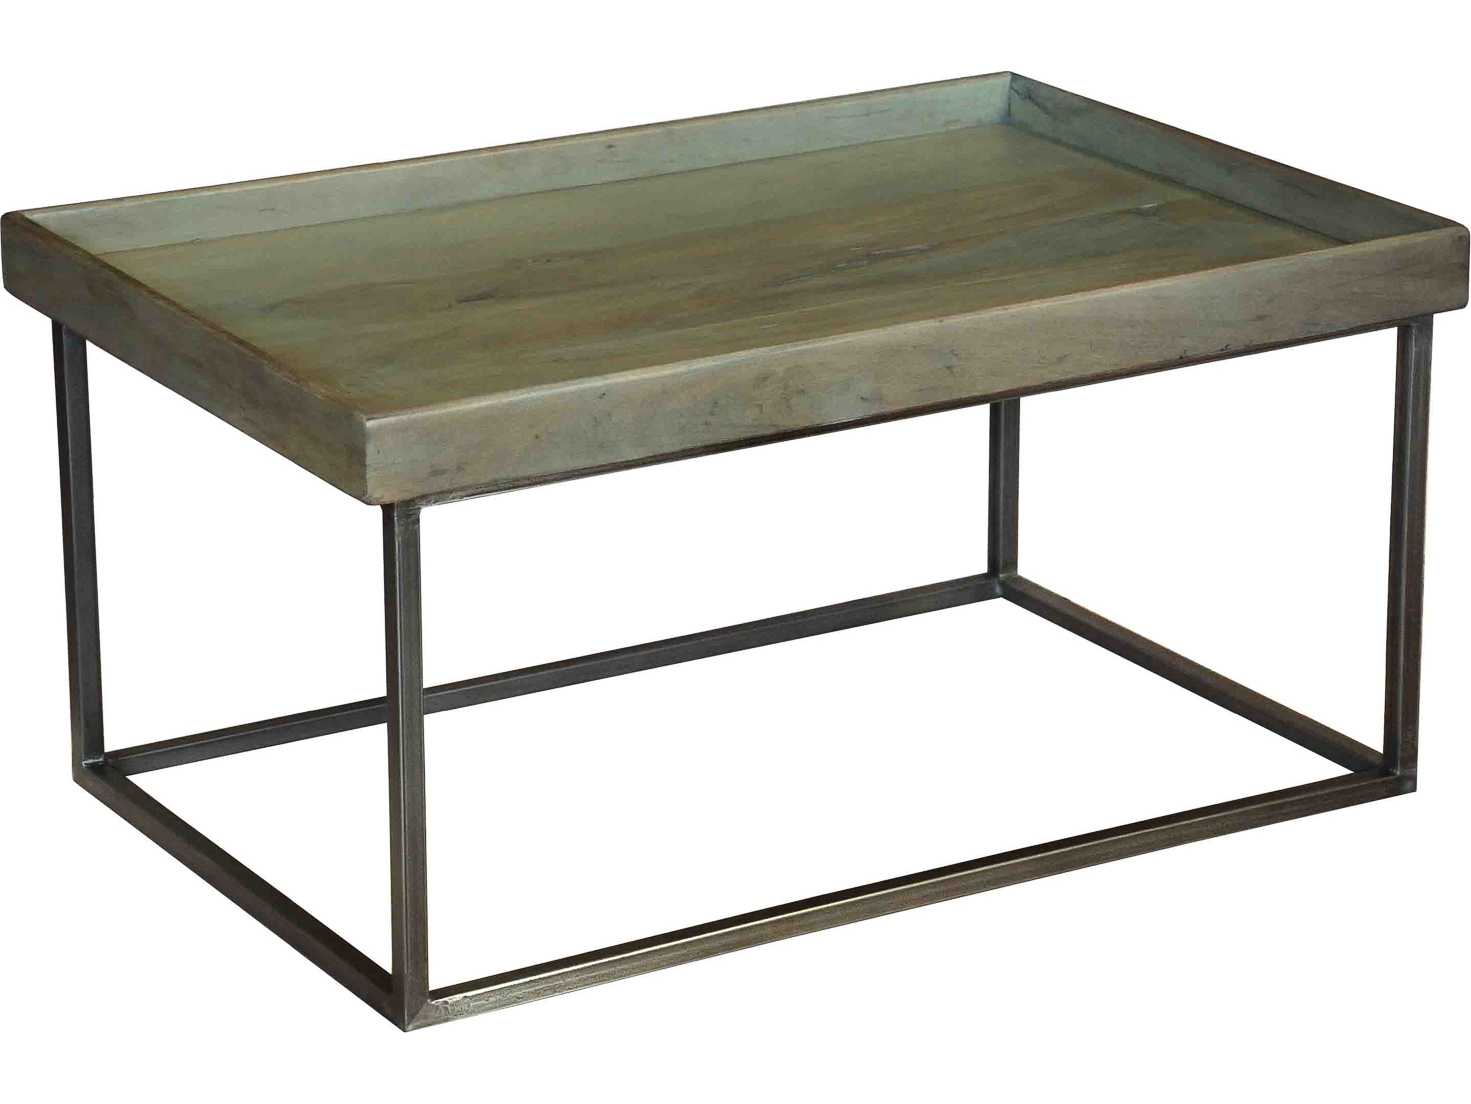 Sarreid 36 x 24 rectangular tray coffee table 27644 for 24 x 24 coffee table